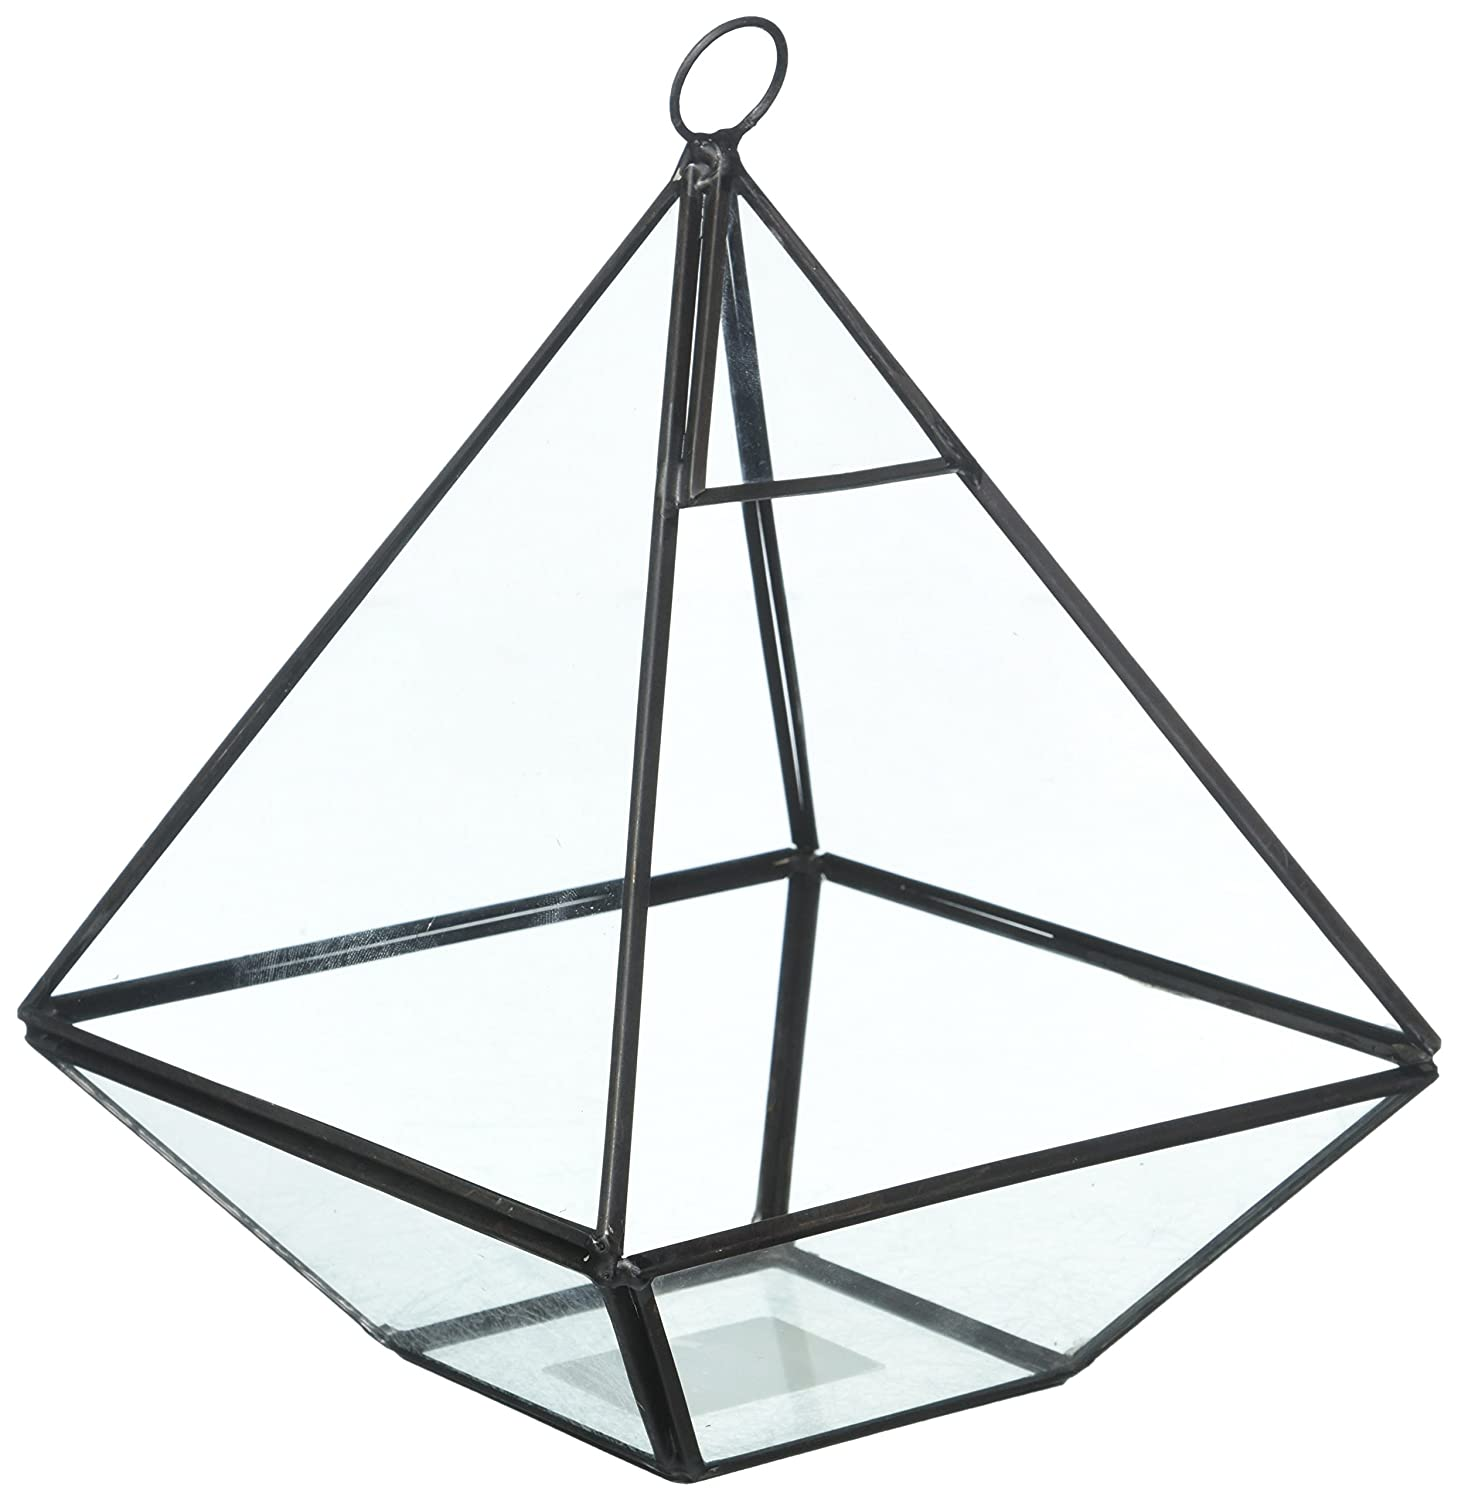 Hanging Clear Glass Prism Air Plant Terrarium/Tabletop Succulent Planter/Tea Light Candle Holder MyGift GET0308BK_1